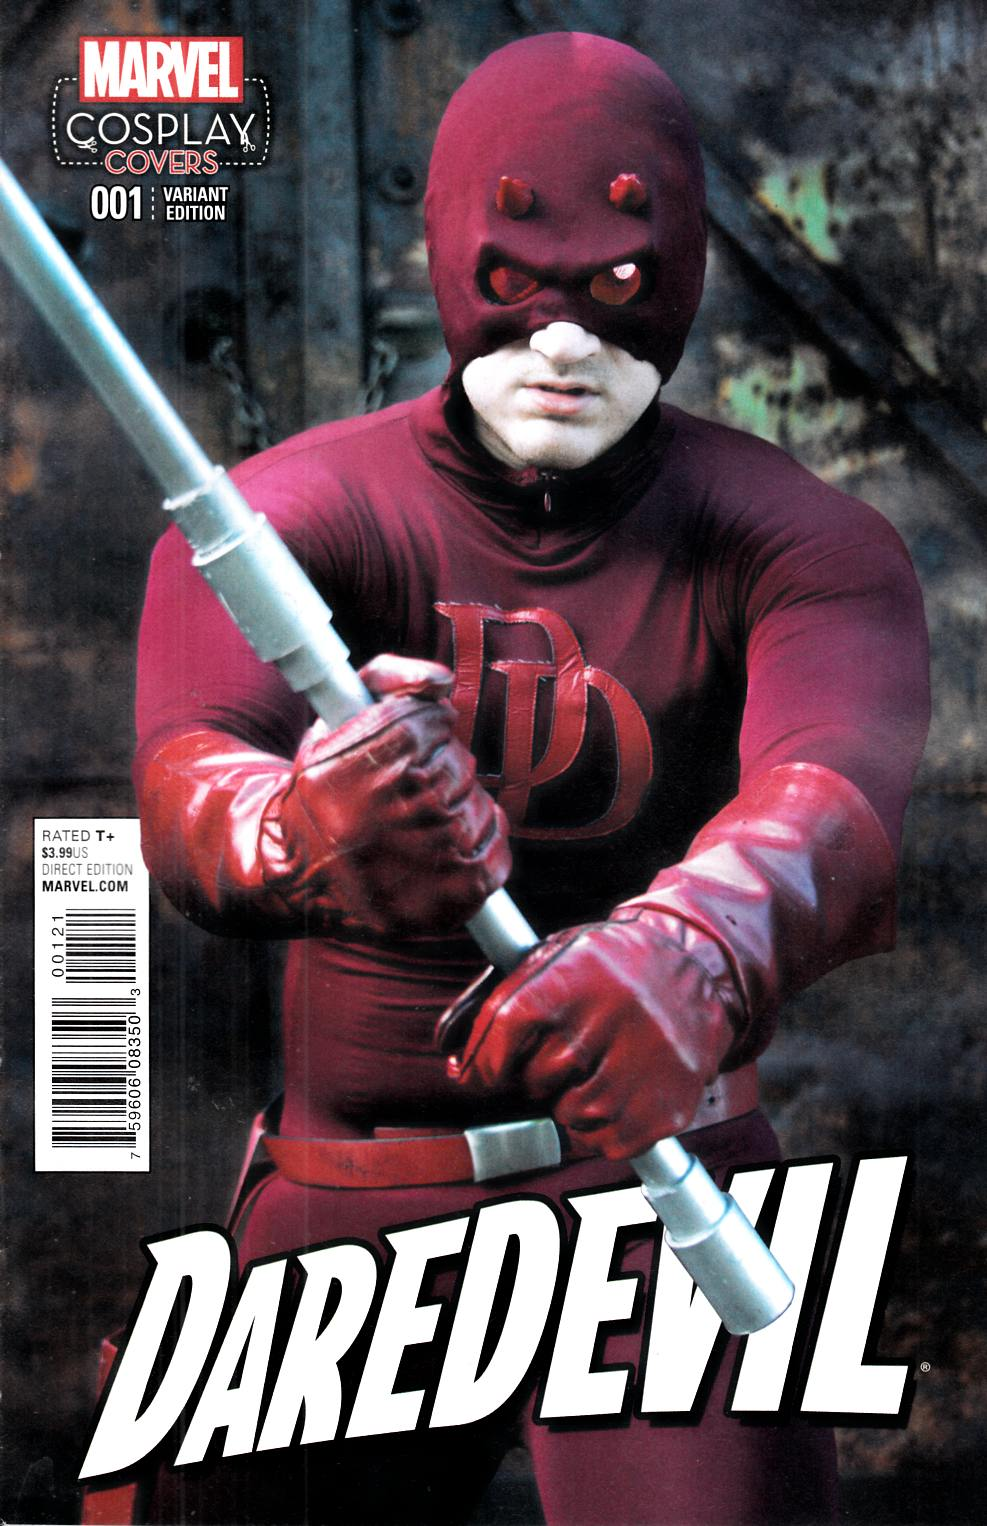 Daredevil #1 Cosplay Variant Cover [Marvel Comic] LARGE